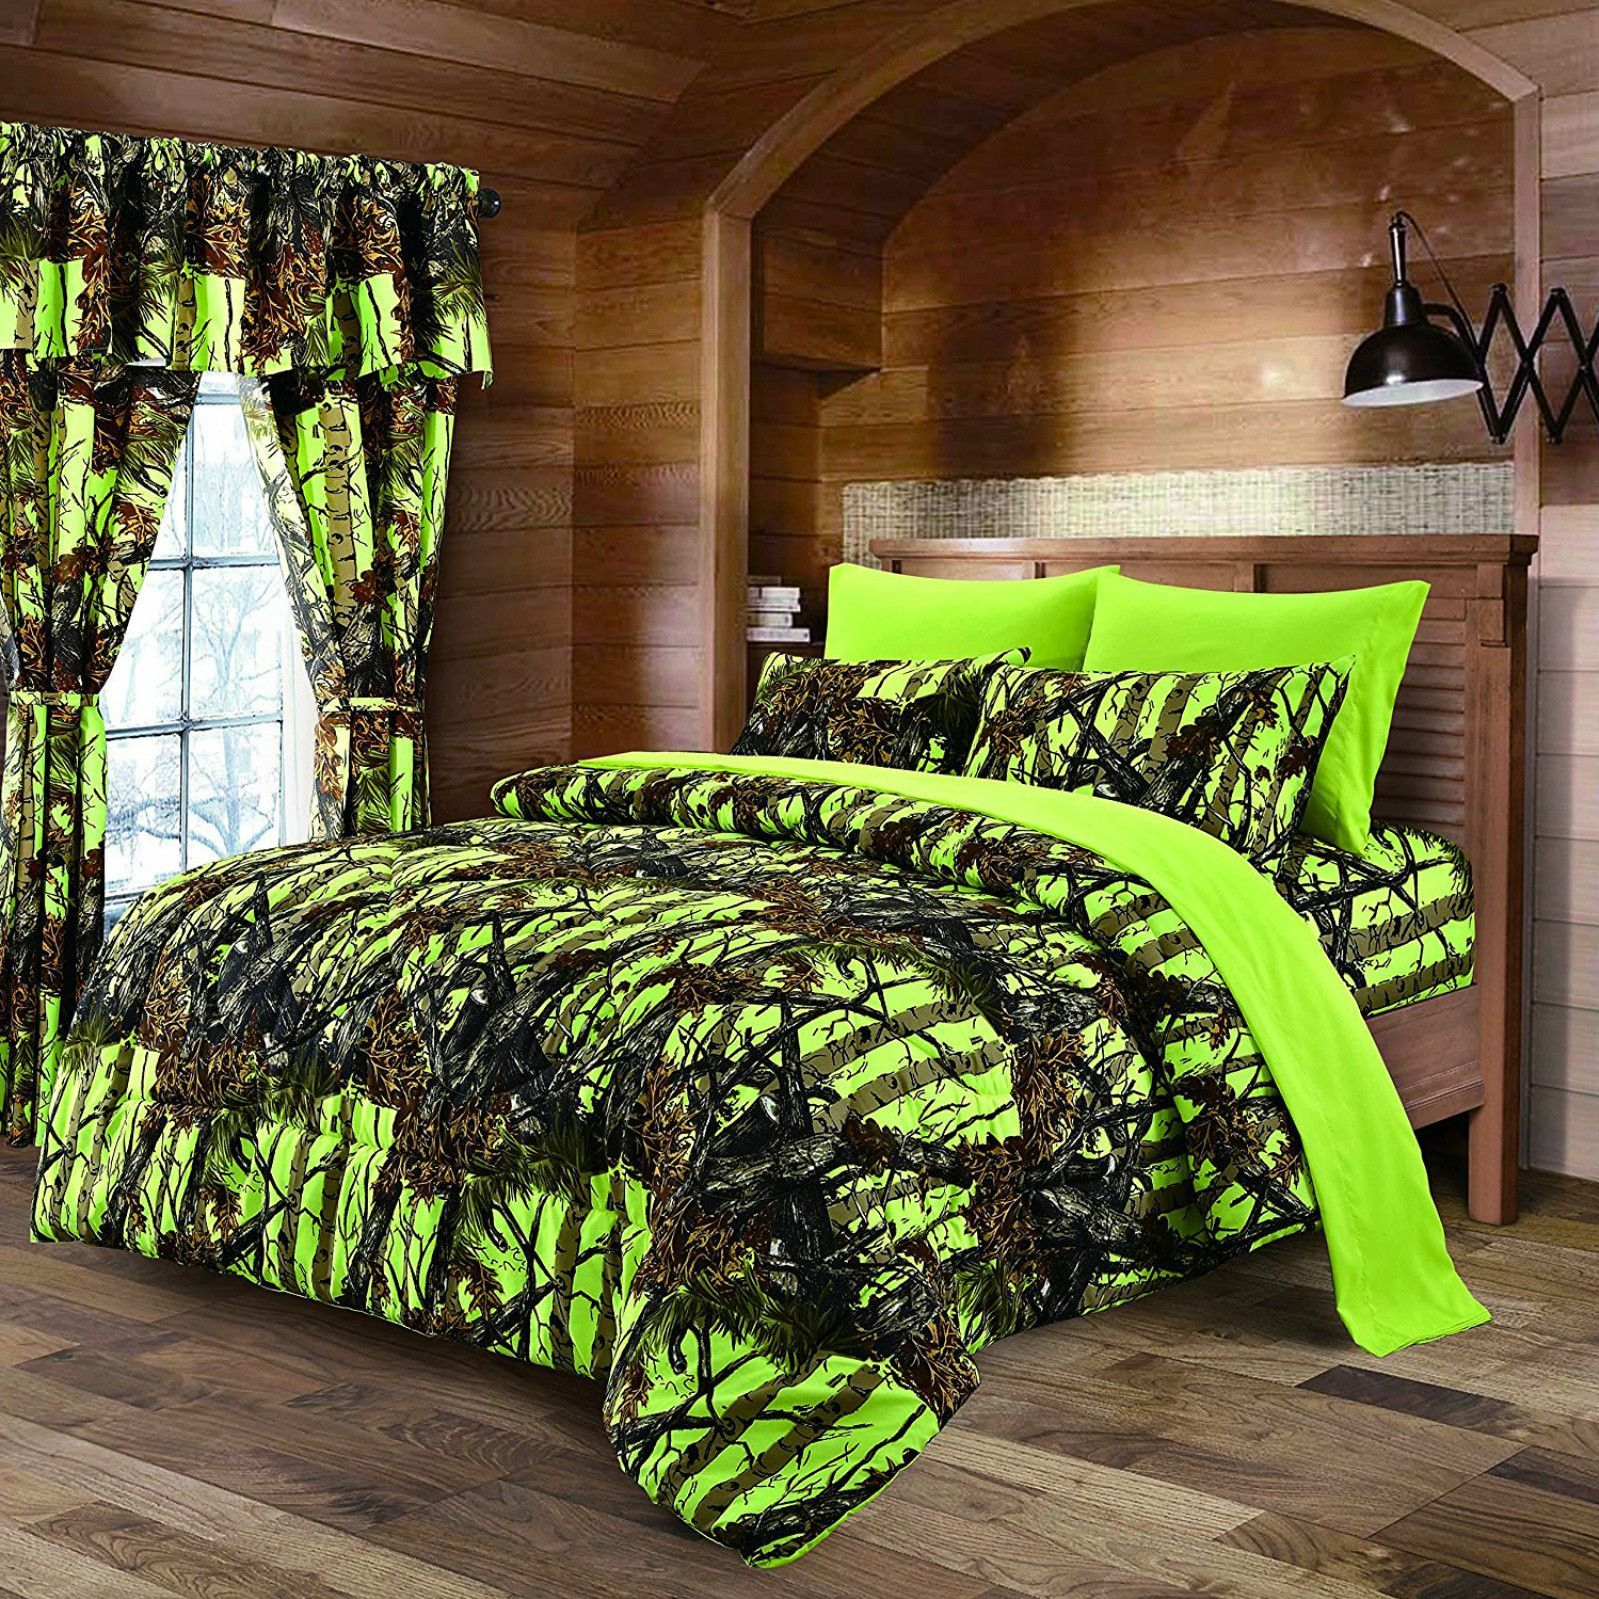 bed queen image camouflage designs in camo a bedding sebastian of bag